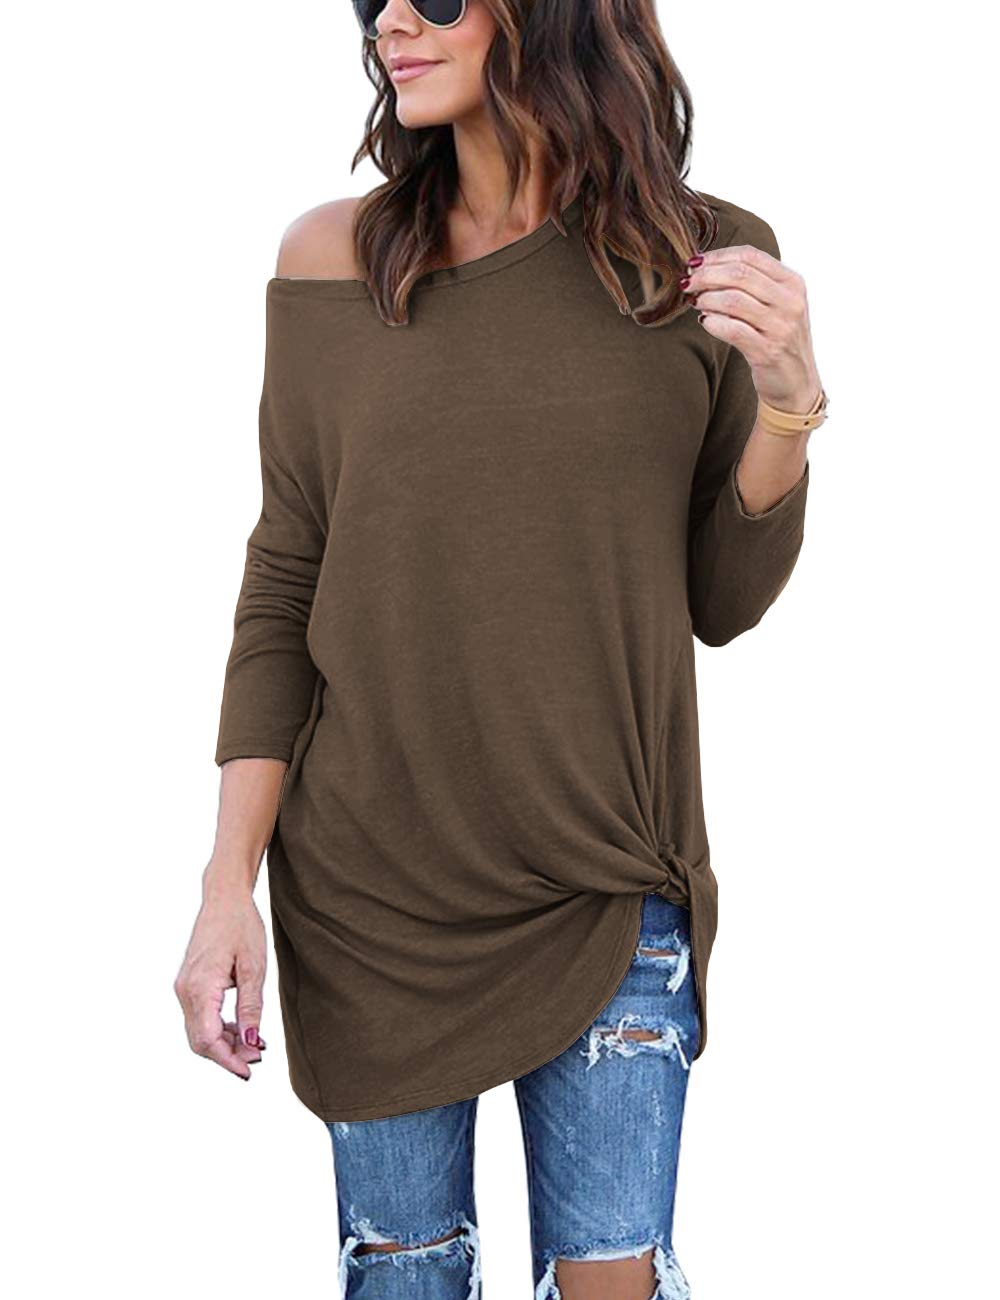 Lookbook Store Women's Casual Soft Long Sleeves Knot Side Twist Knit Blouse Top LBS-TO-3288